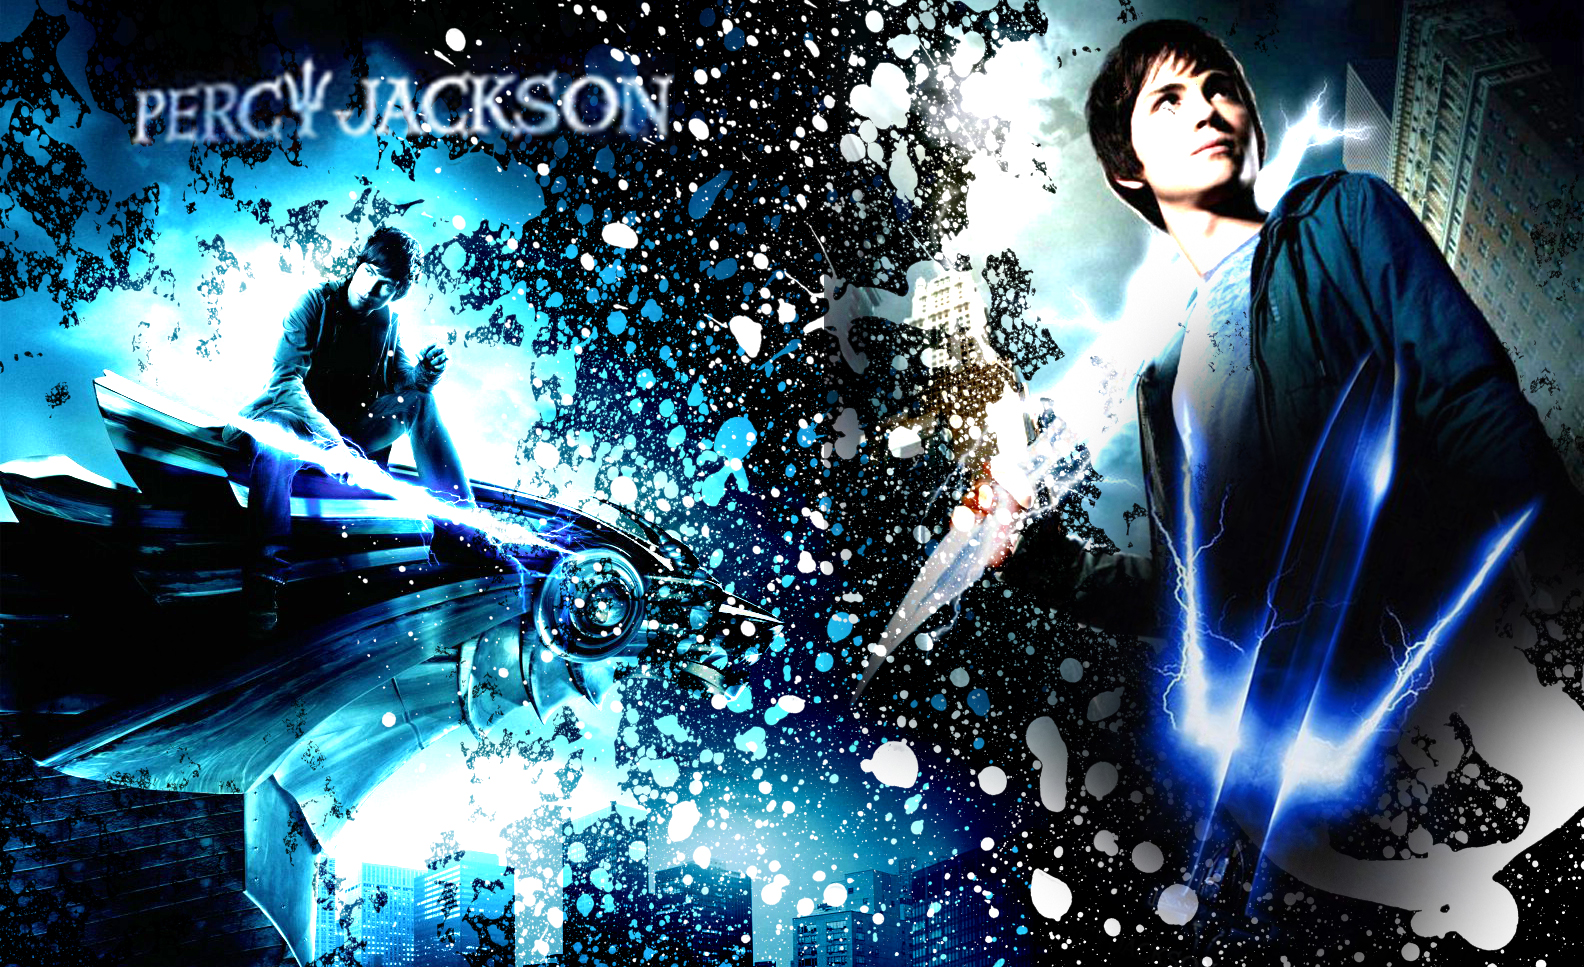 Percy jackson wallpaper for computer wallpapersafari percy jackson desktop wallpapers hd wallpapers backgrounds of your 1584x967 voltagebd Choice Image